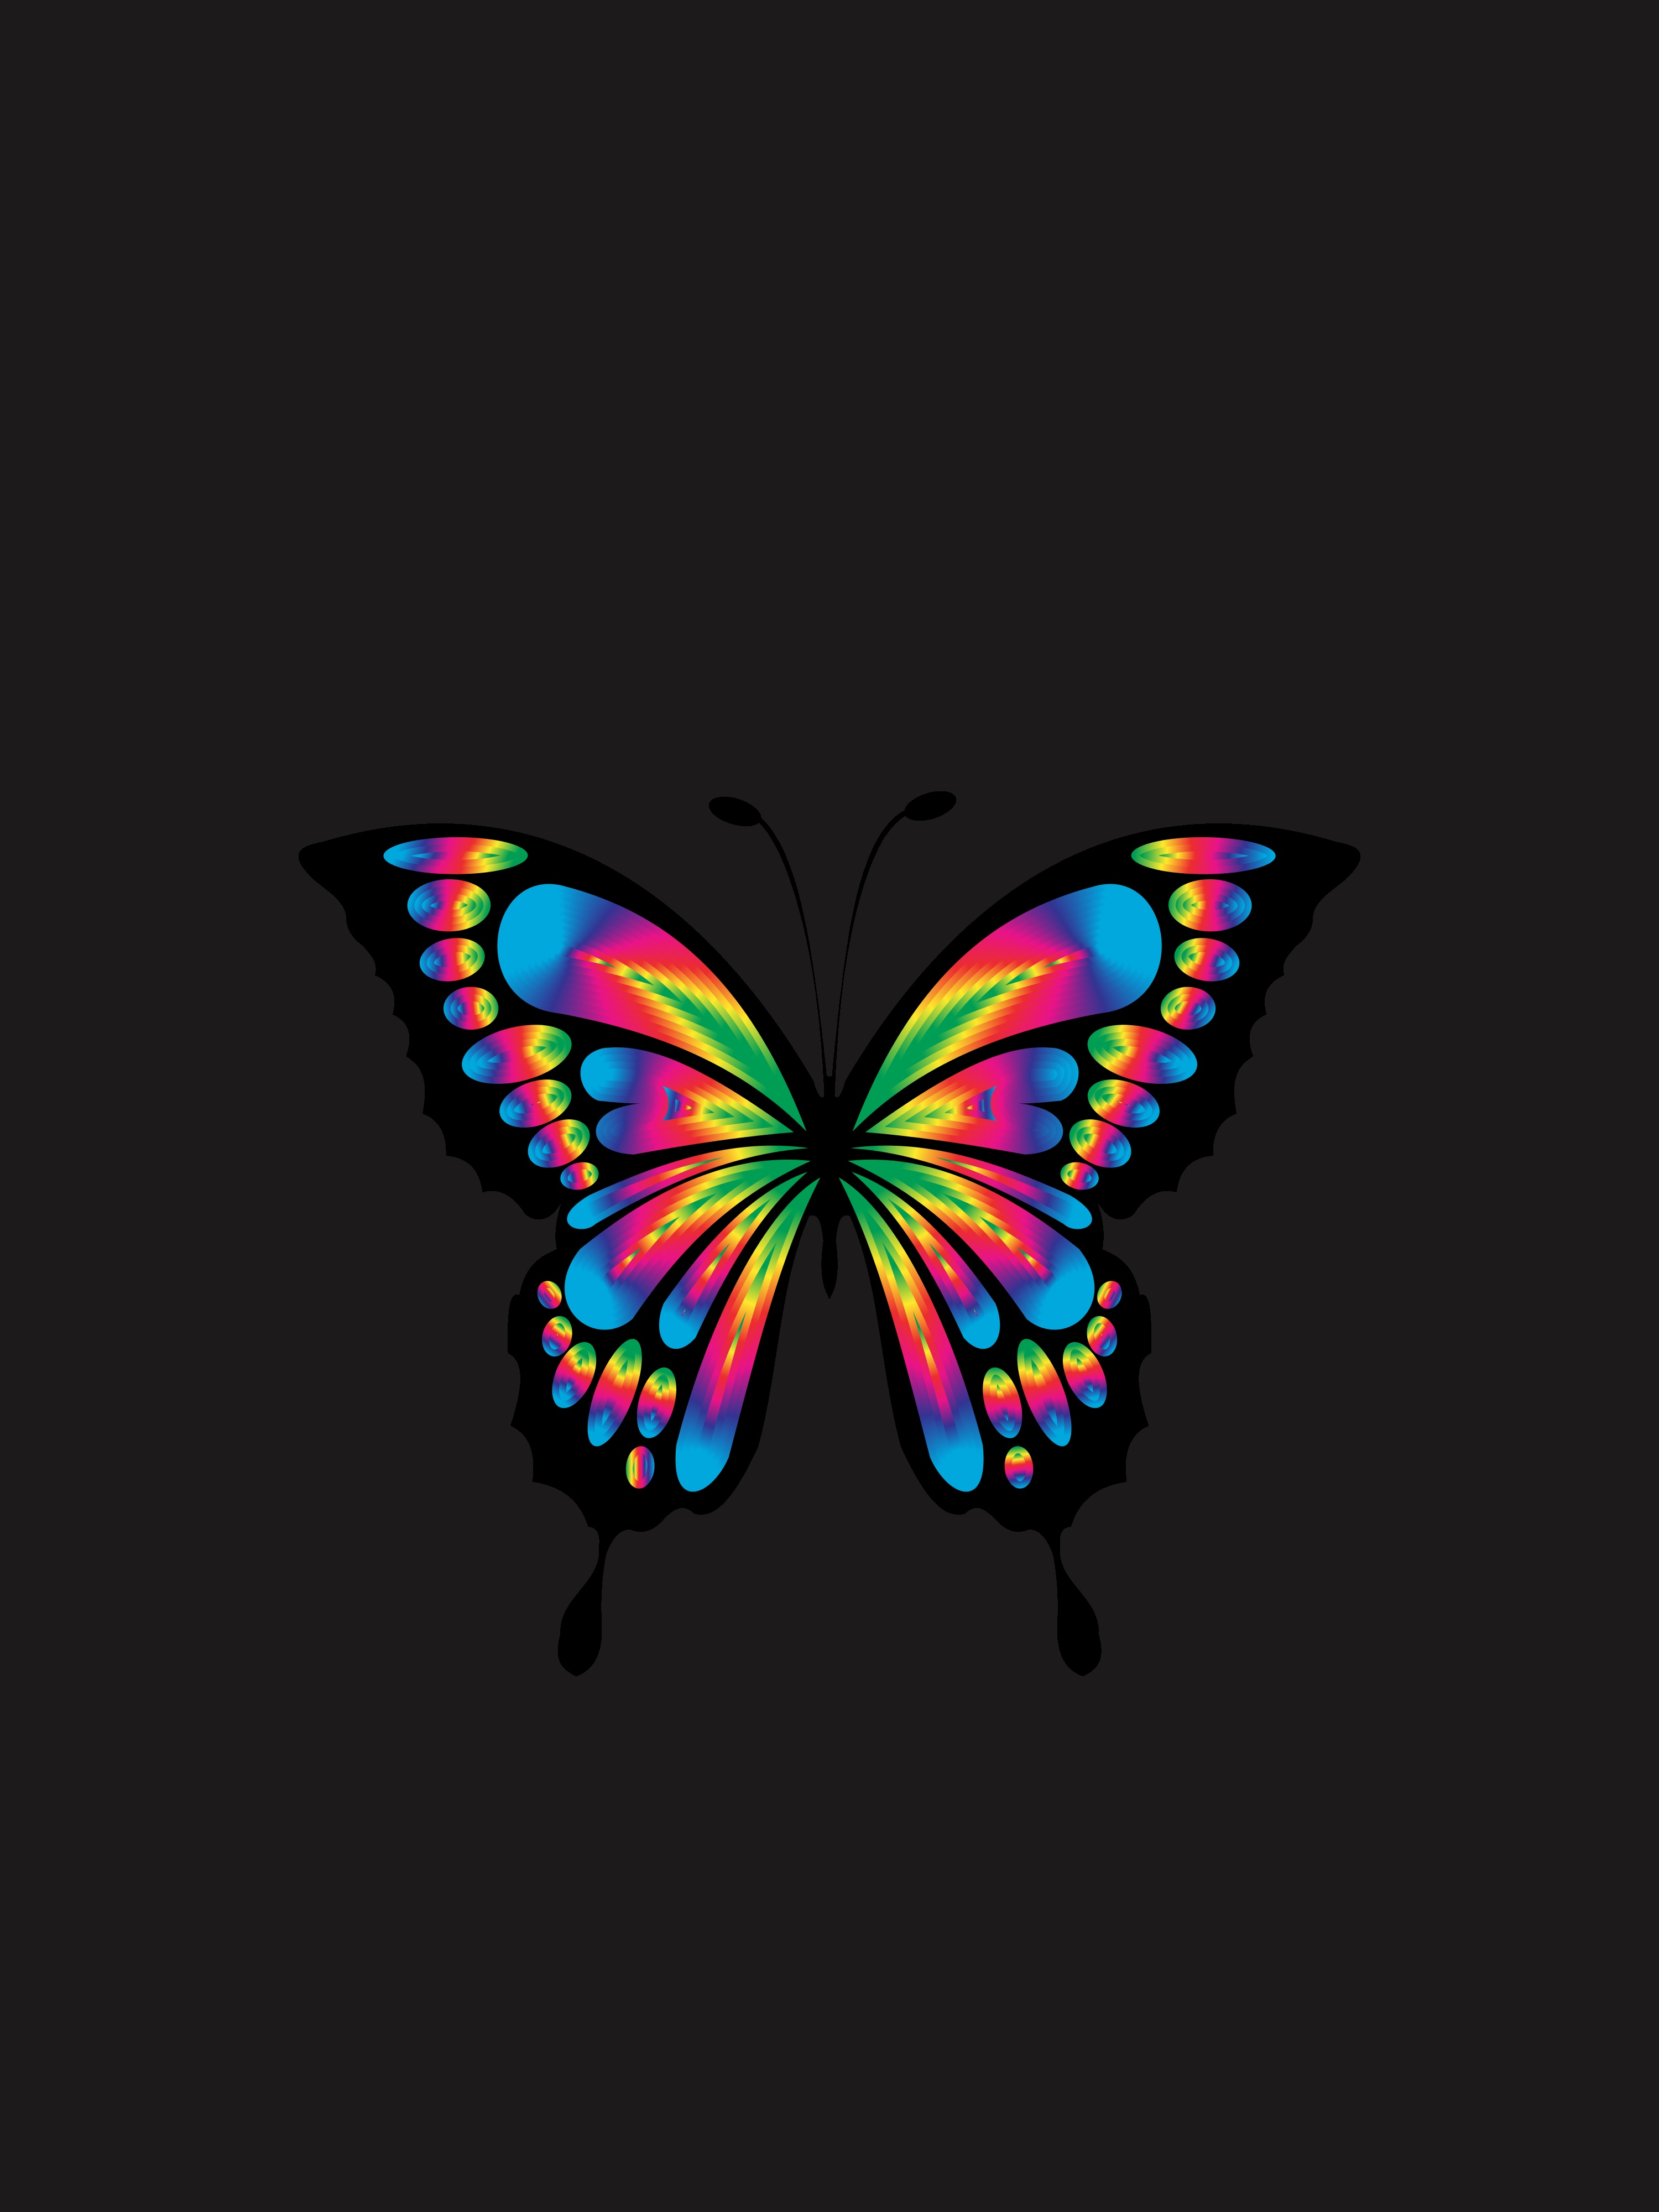 149266 Screensavers and Wallpapers Butterfly for phone. Download Shine, Bright, Multicolored, Motley, Minimalism, Brilliance, Butterfly, Prismatic, Chromatic pictures for free